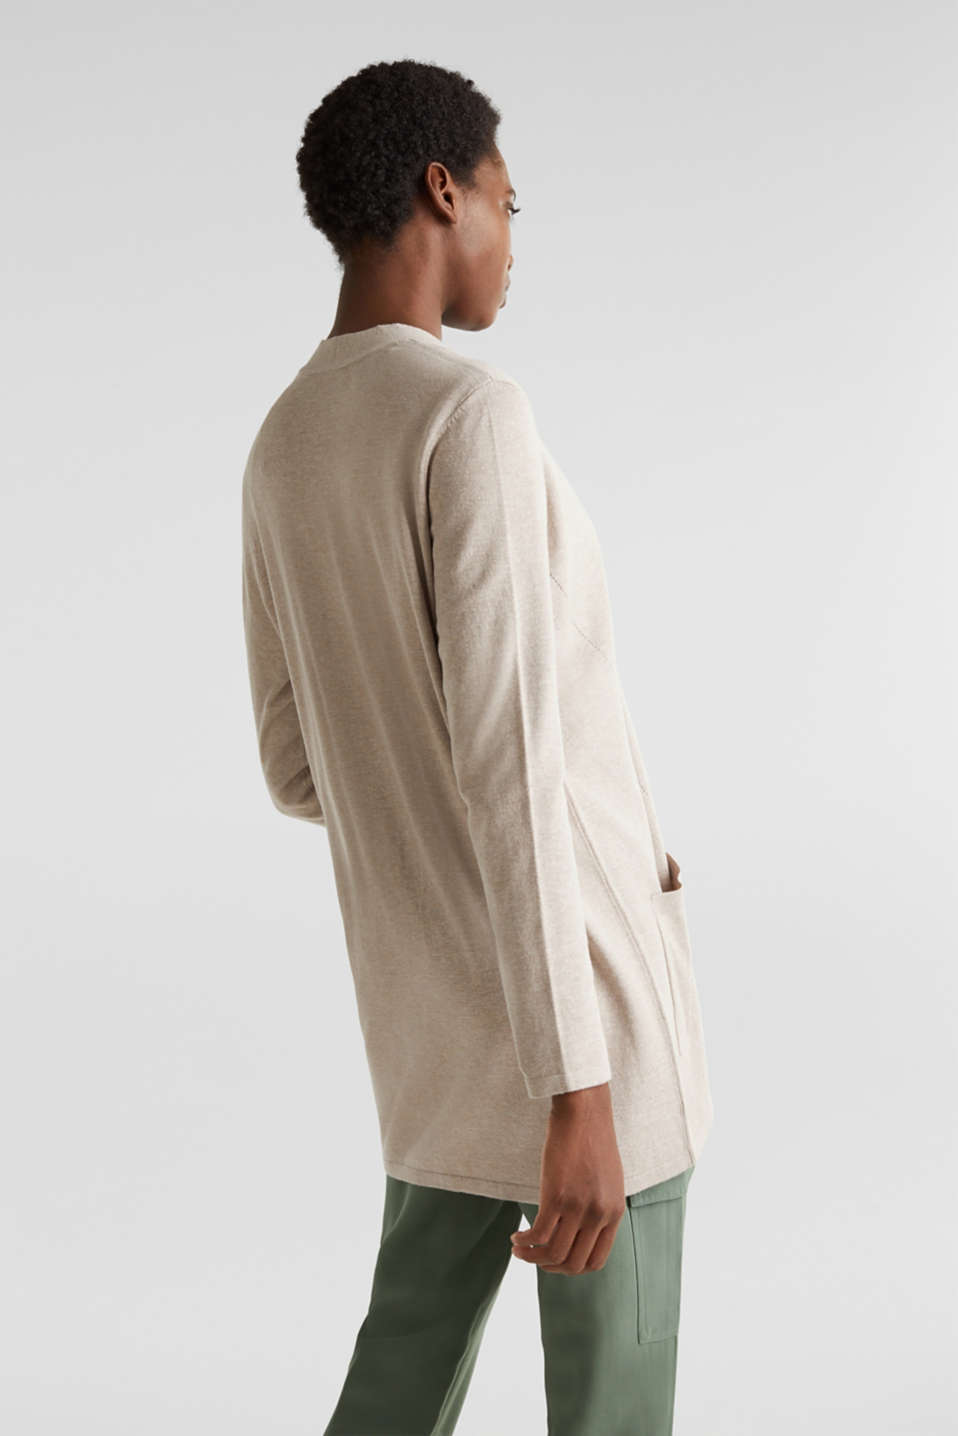 With linen: open cardigan with open-work pattern details, BEIGE 5, detail image number 2